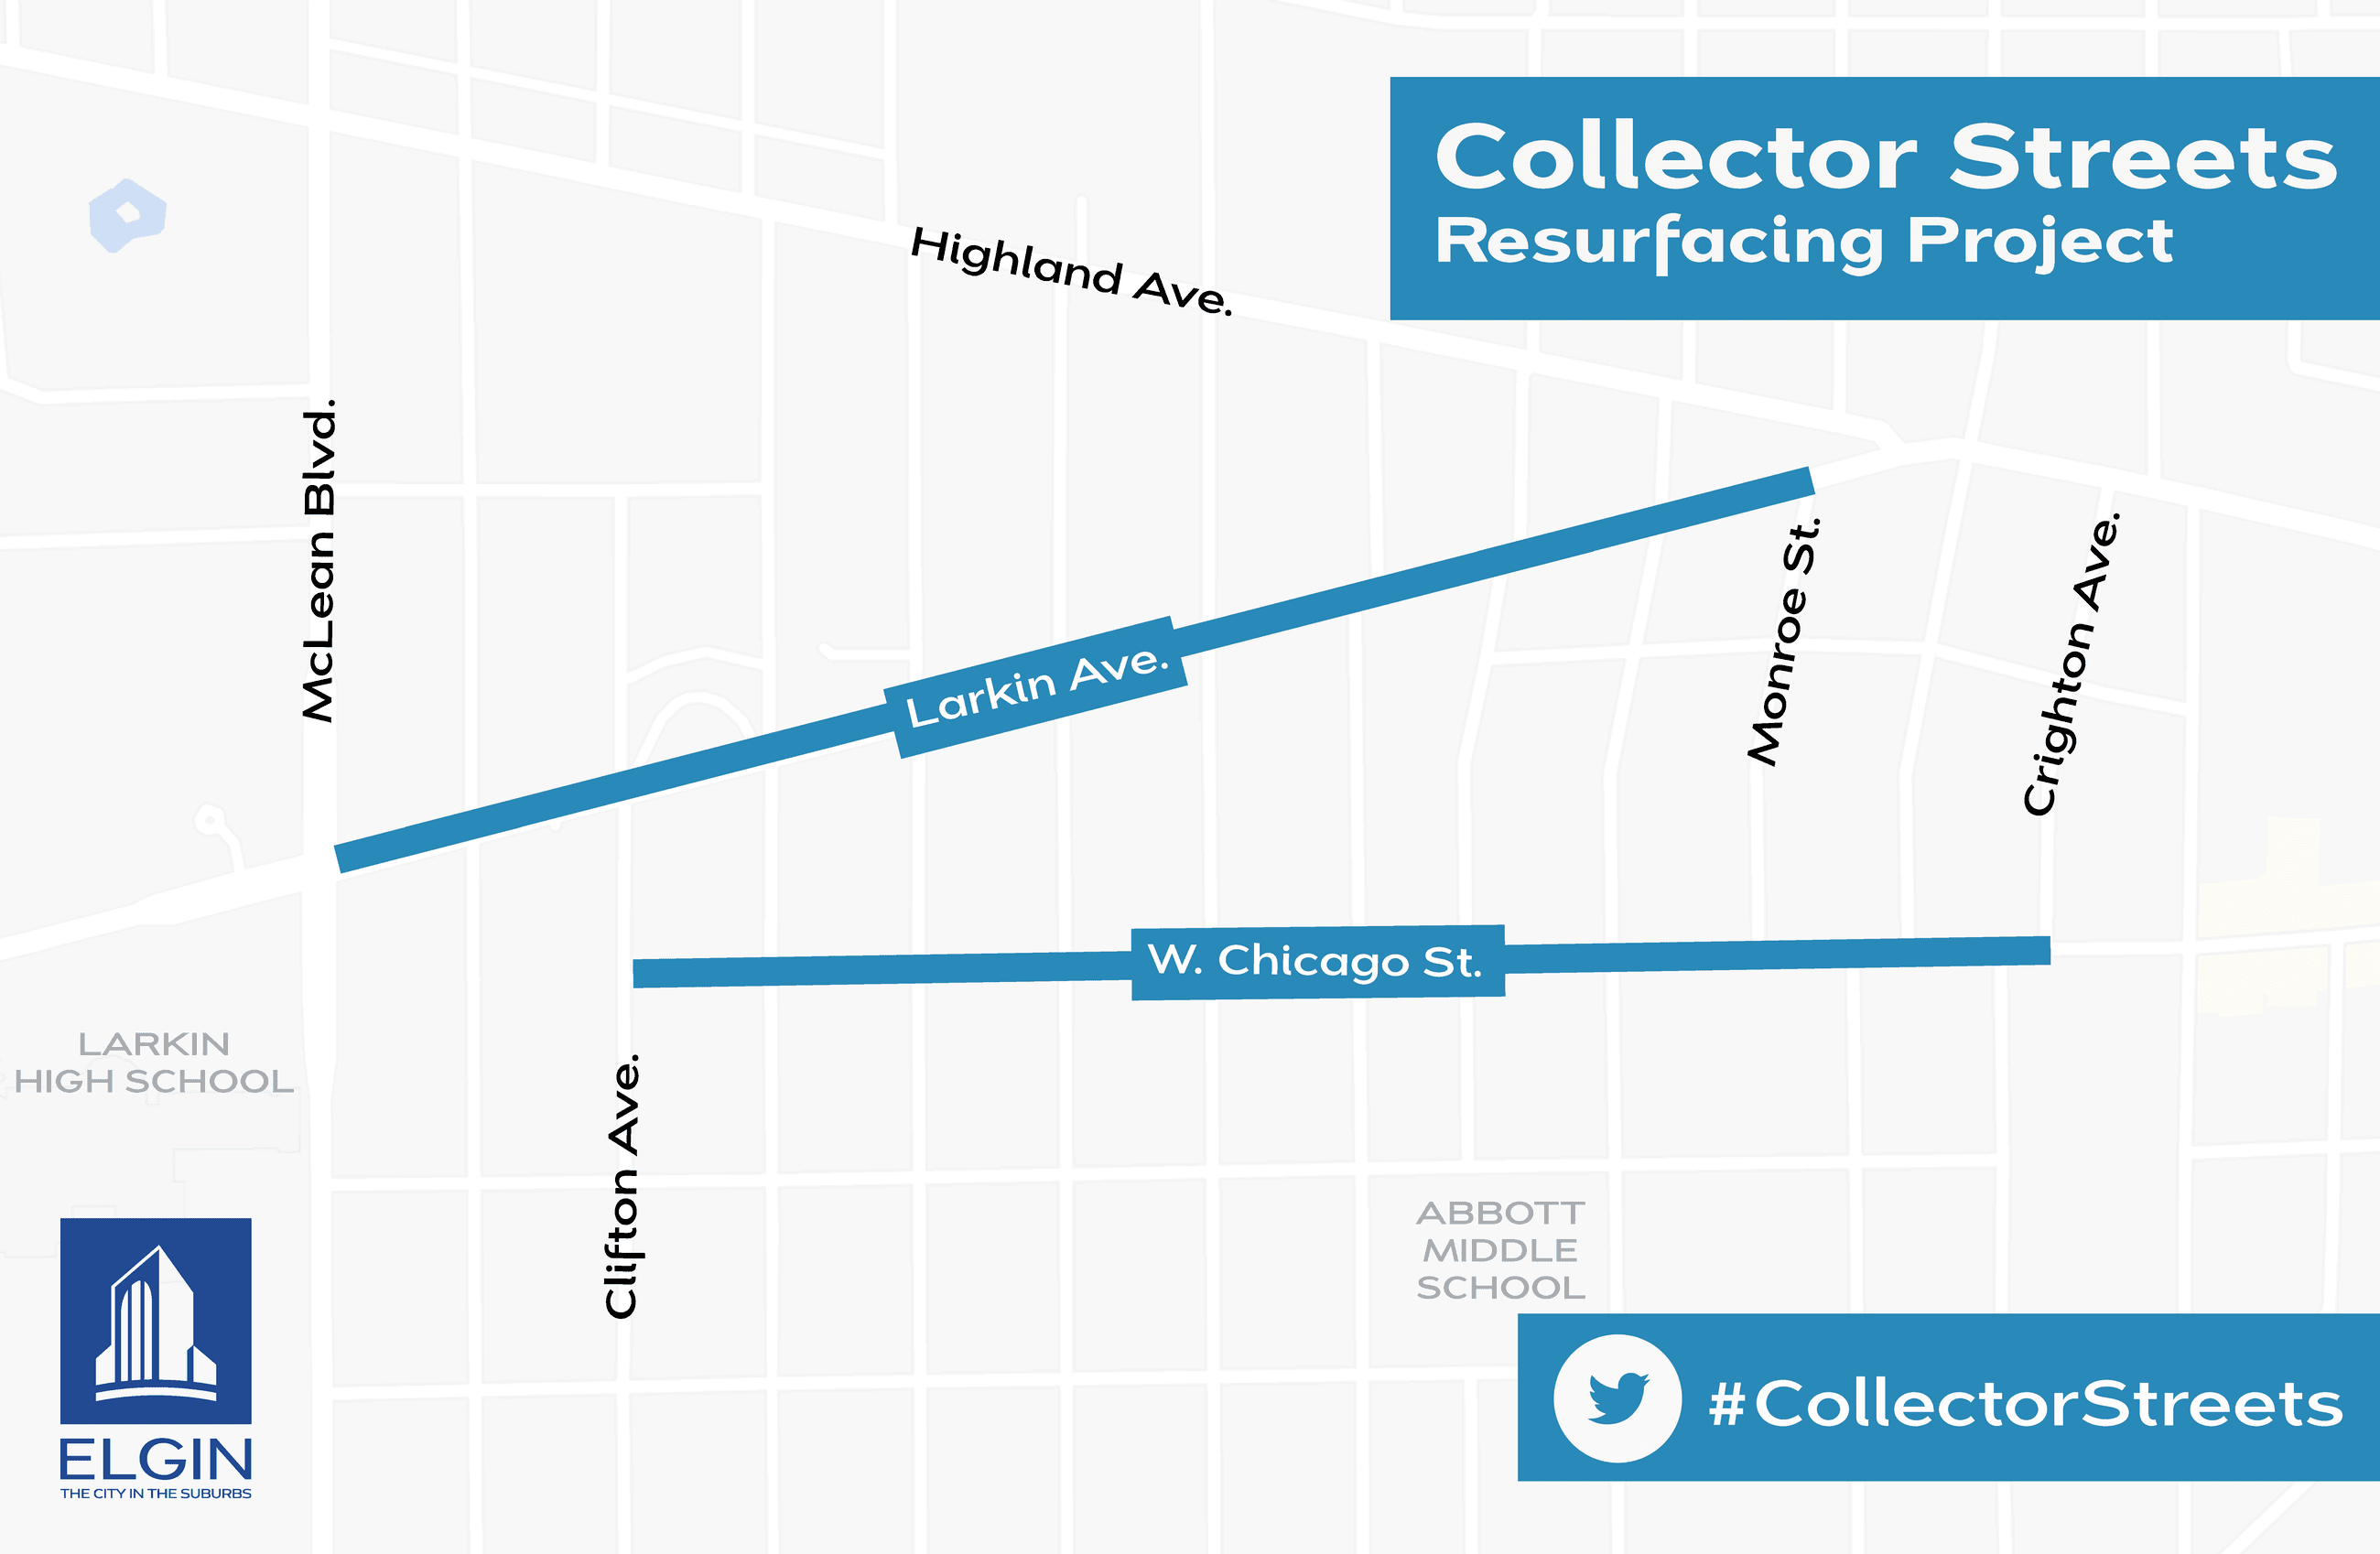 Collector Street Resurfacing Map for Larkin Avenue